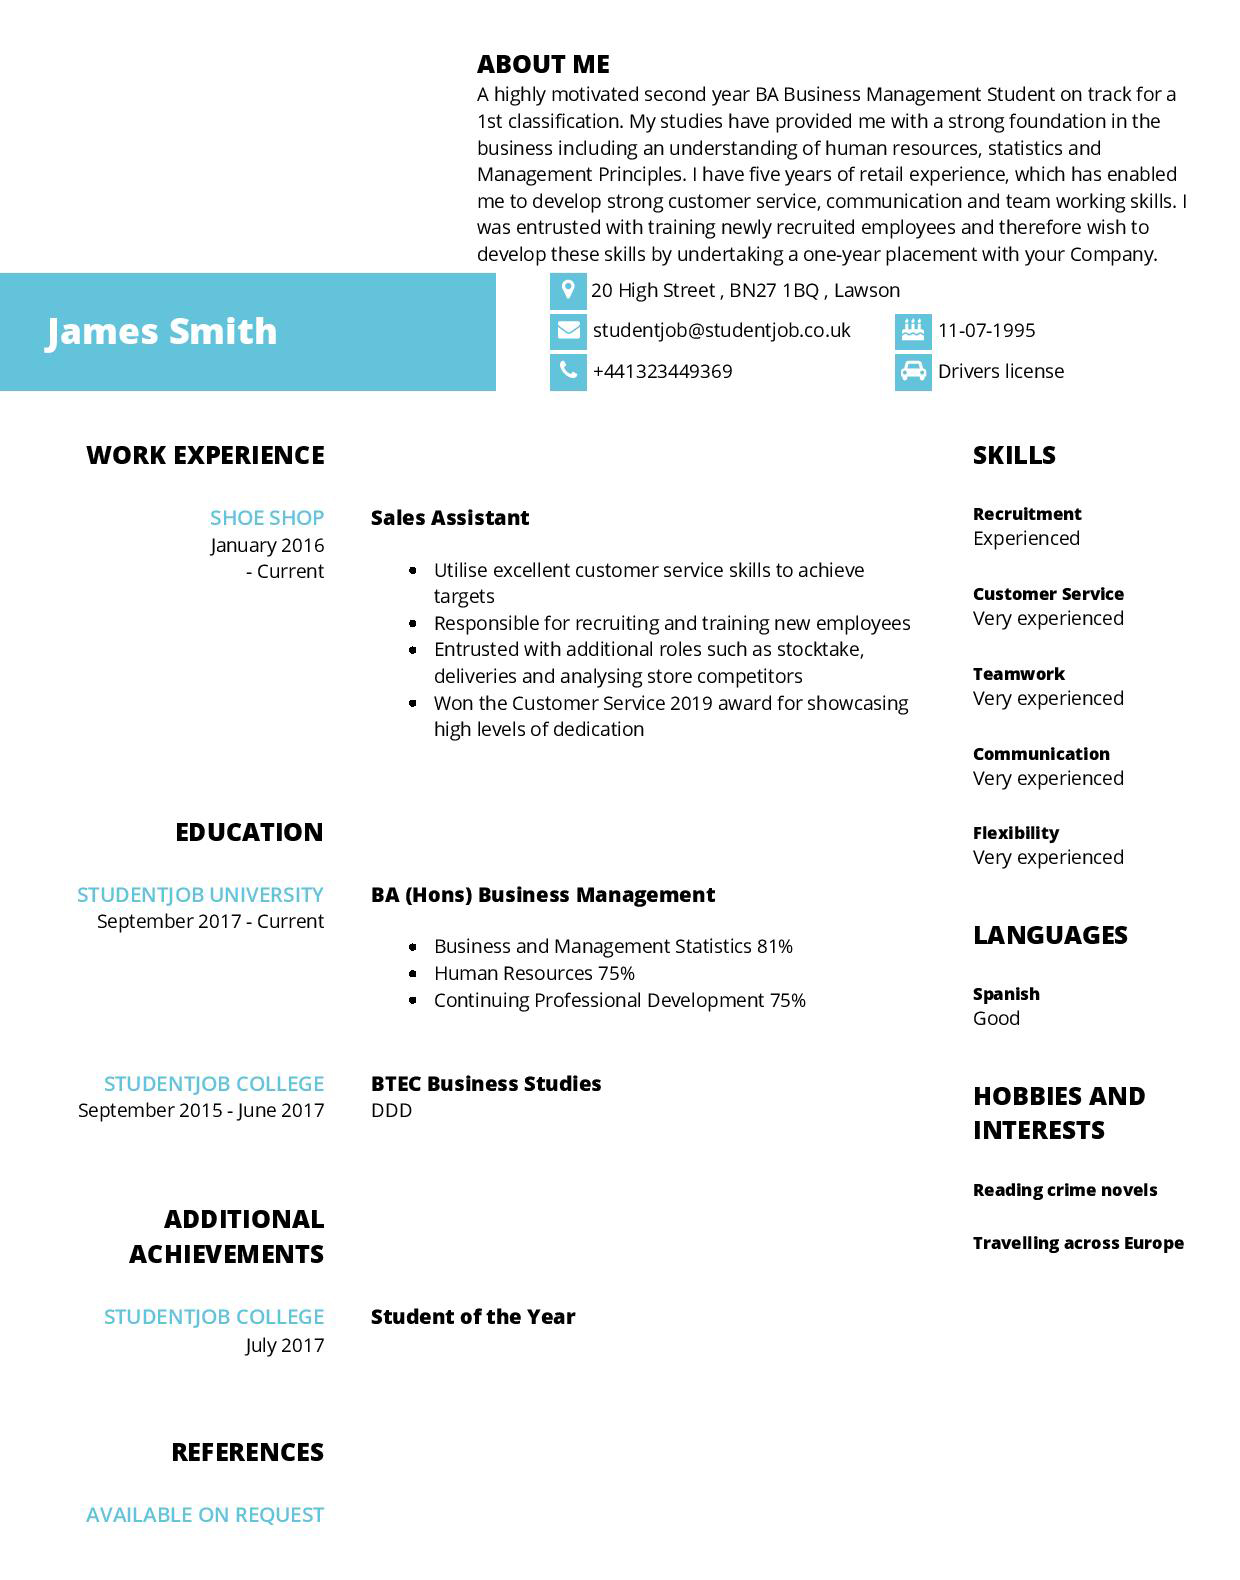 cv examples and templates studentjob university resume samples for students james cropped Resume University Resume Samples For Students